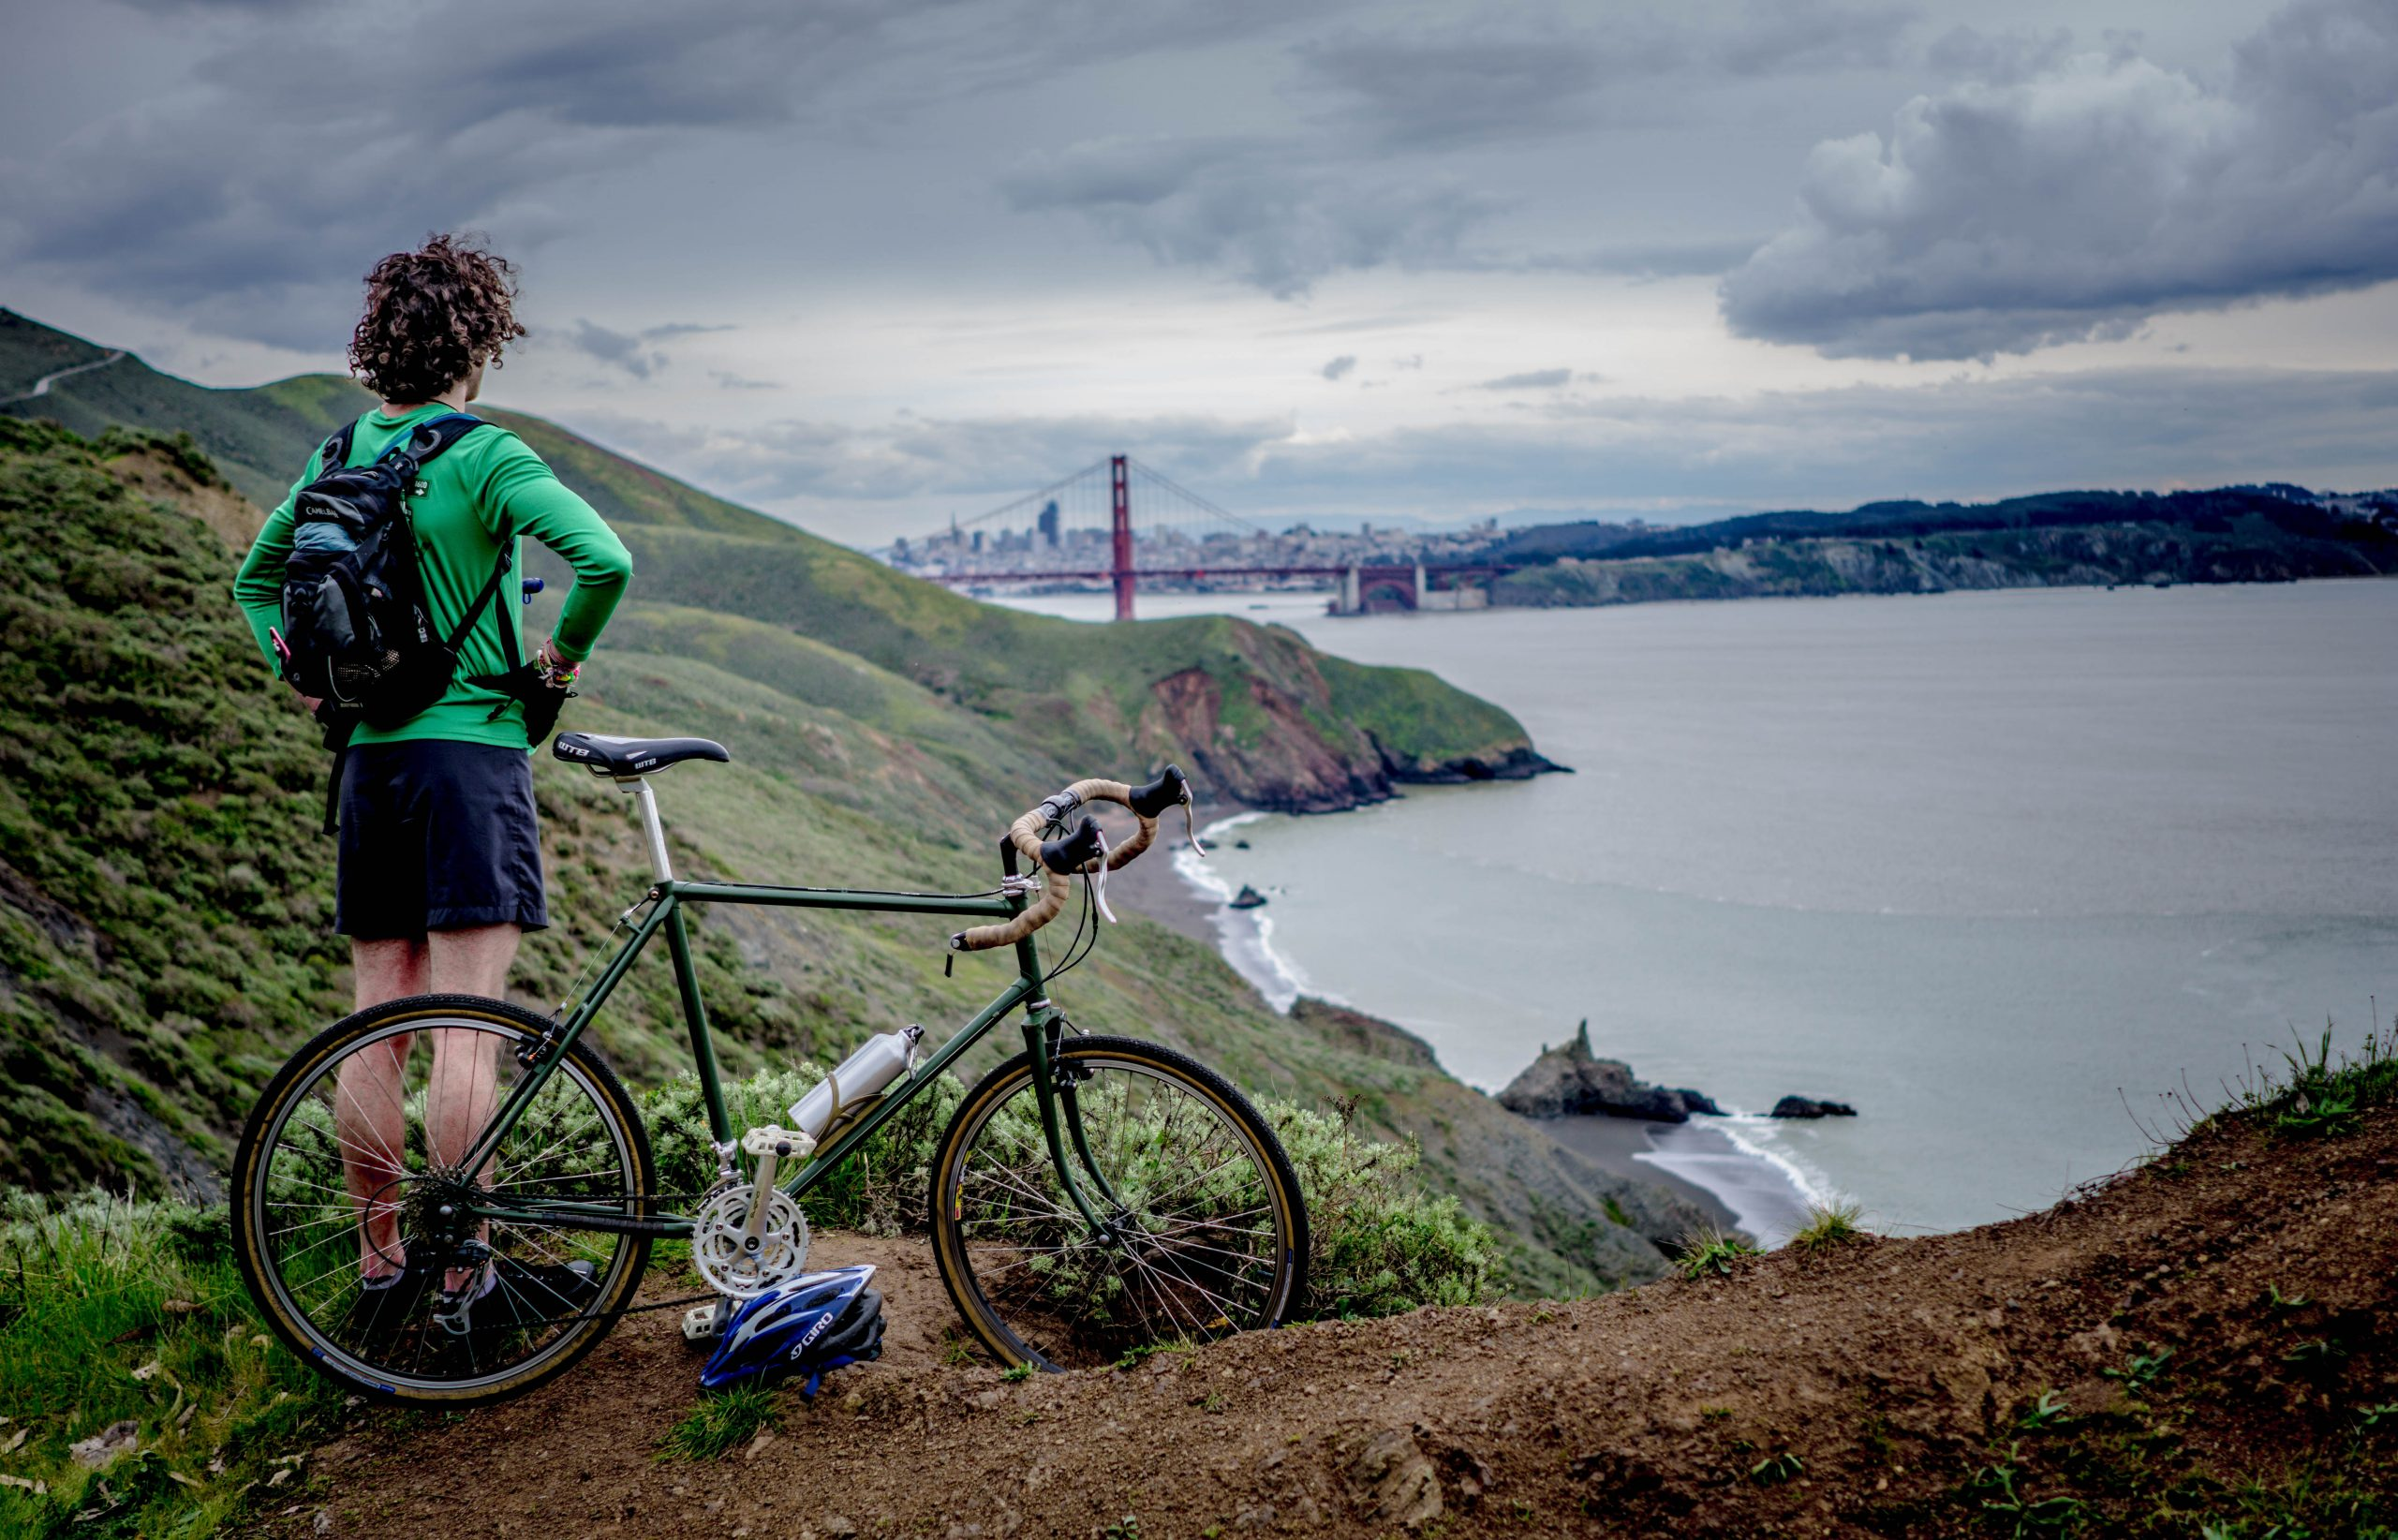 Person on roadside with bike overlooking the bay